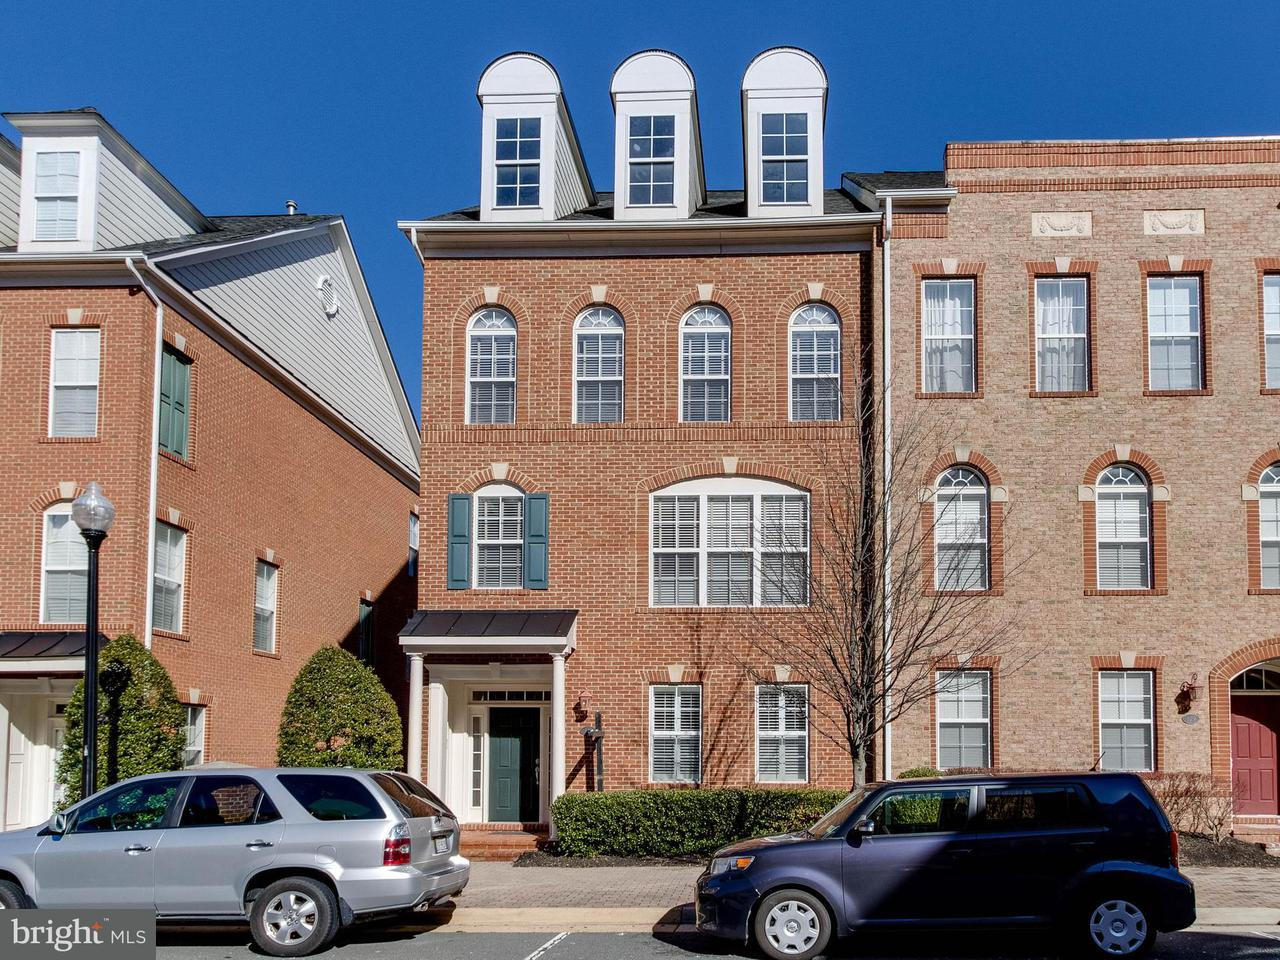 Townhouse for Sale at 131 Fortnightly Blvd 131 Fortnightly Blvd Herndon, Virginia 20170 United States